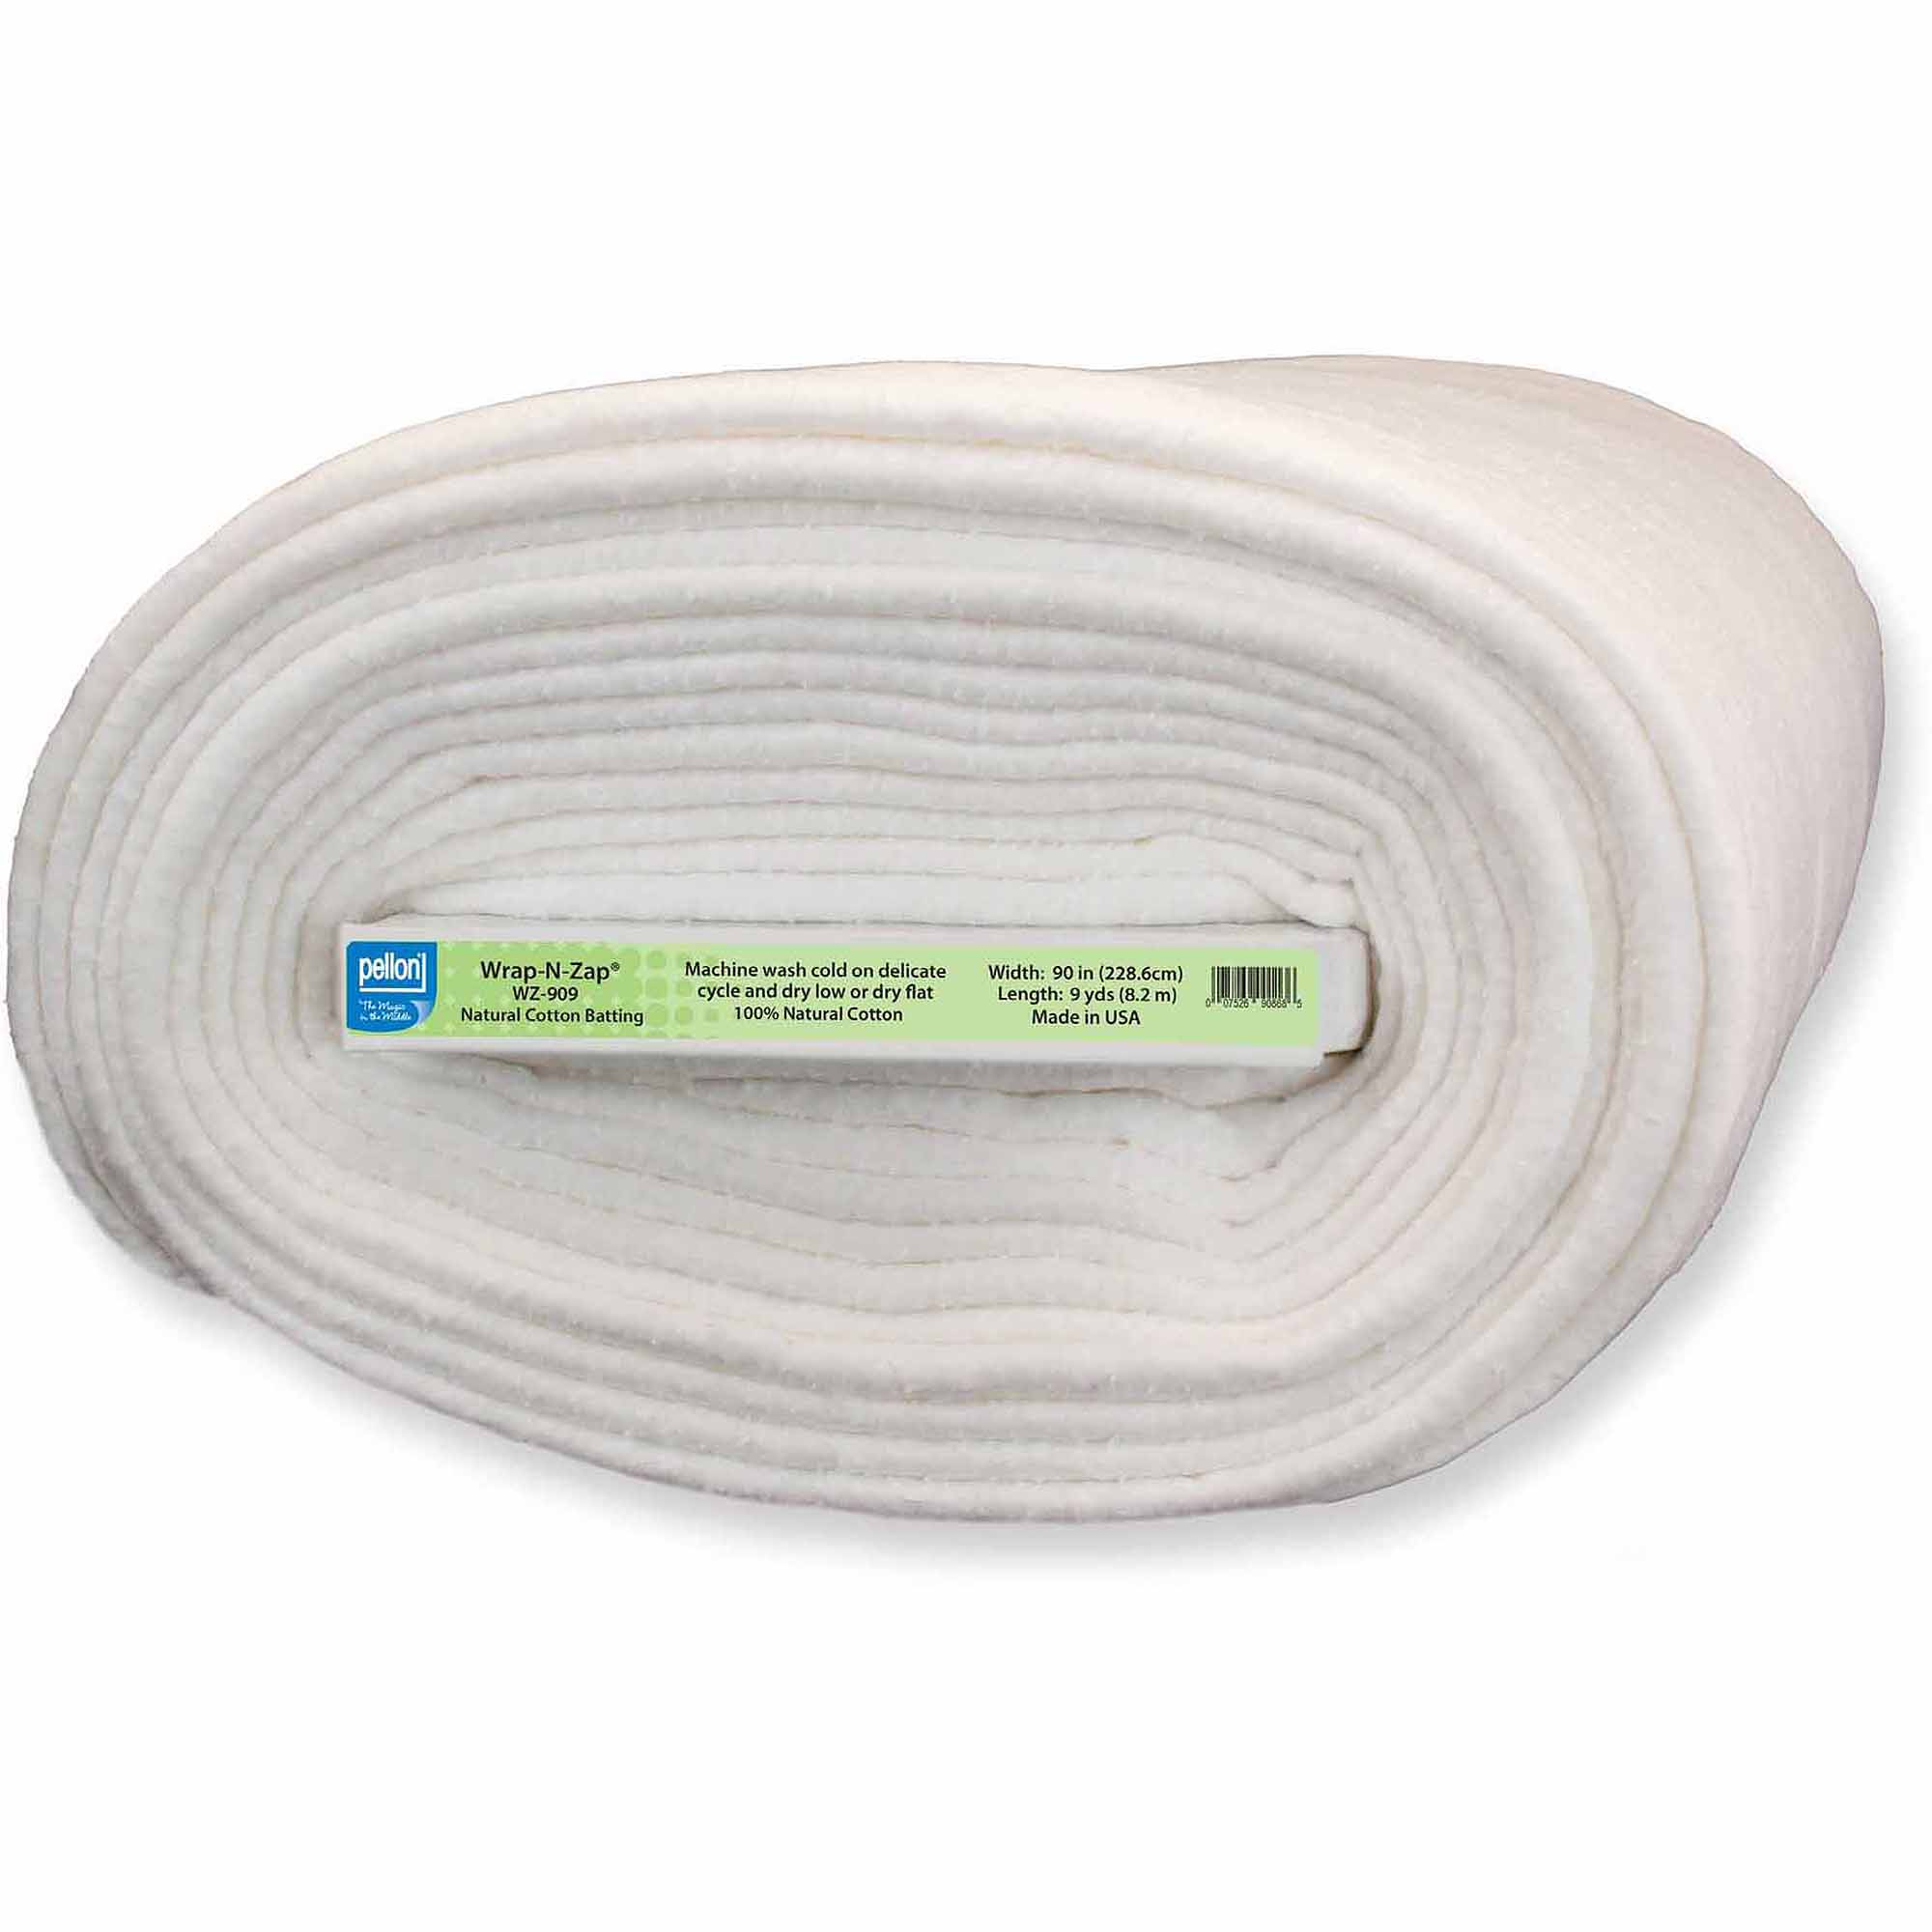 "Pellon Wrap-N-Zap Natural Cotton Batting, 90"" Wide, 9 Yard Bolt"